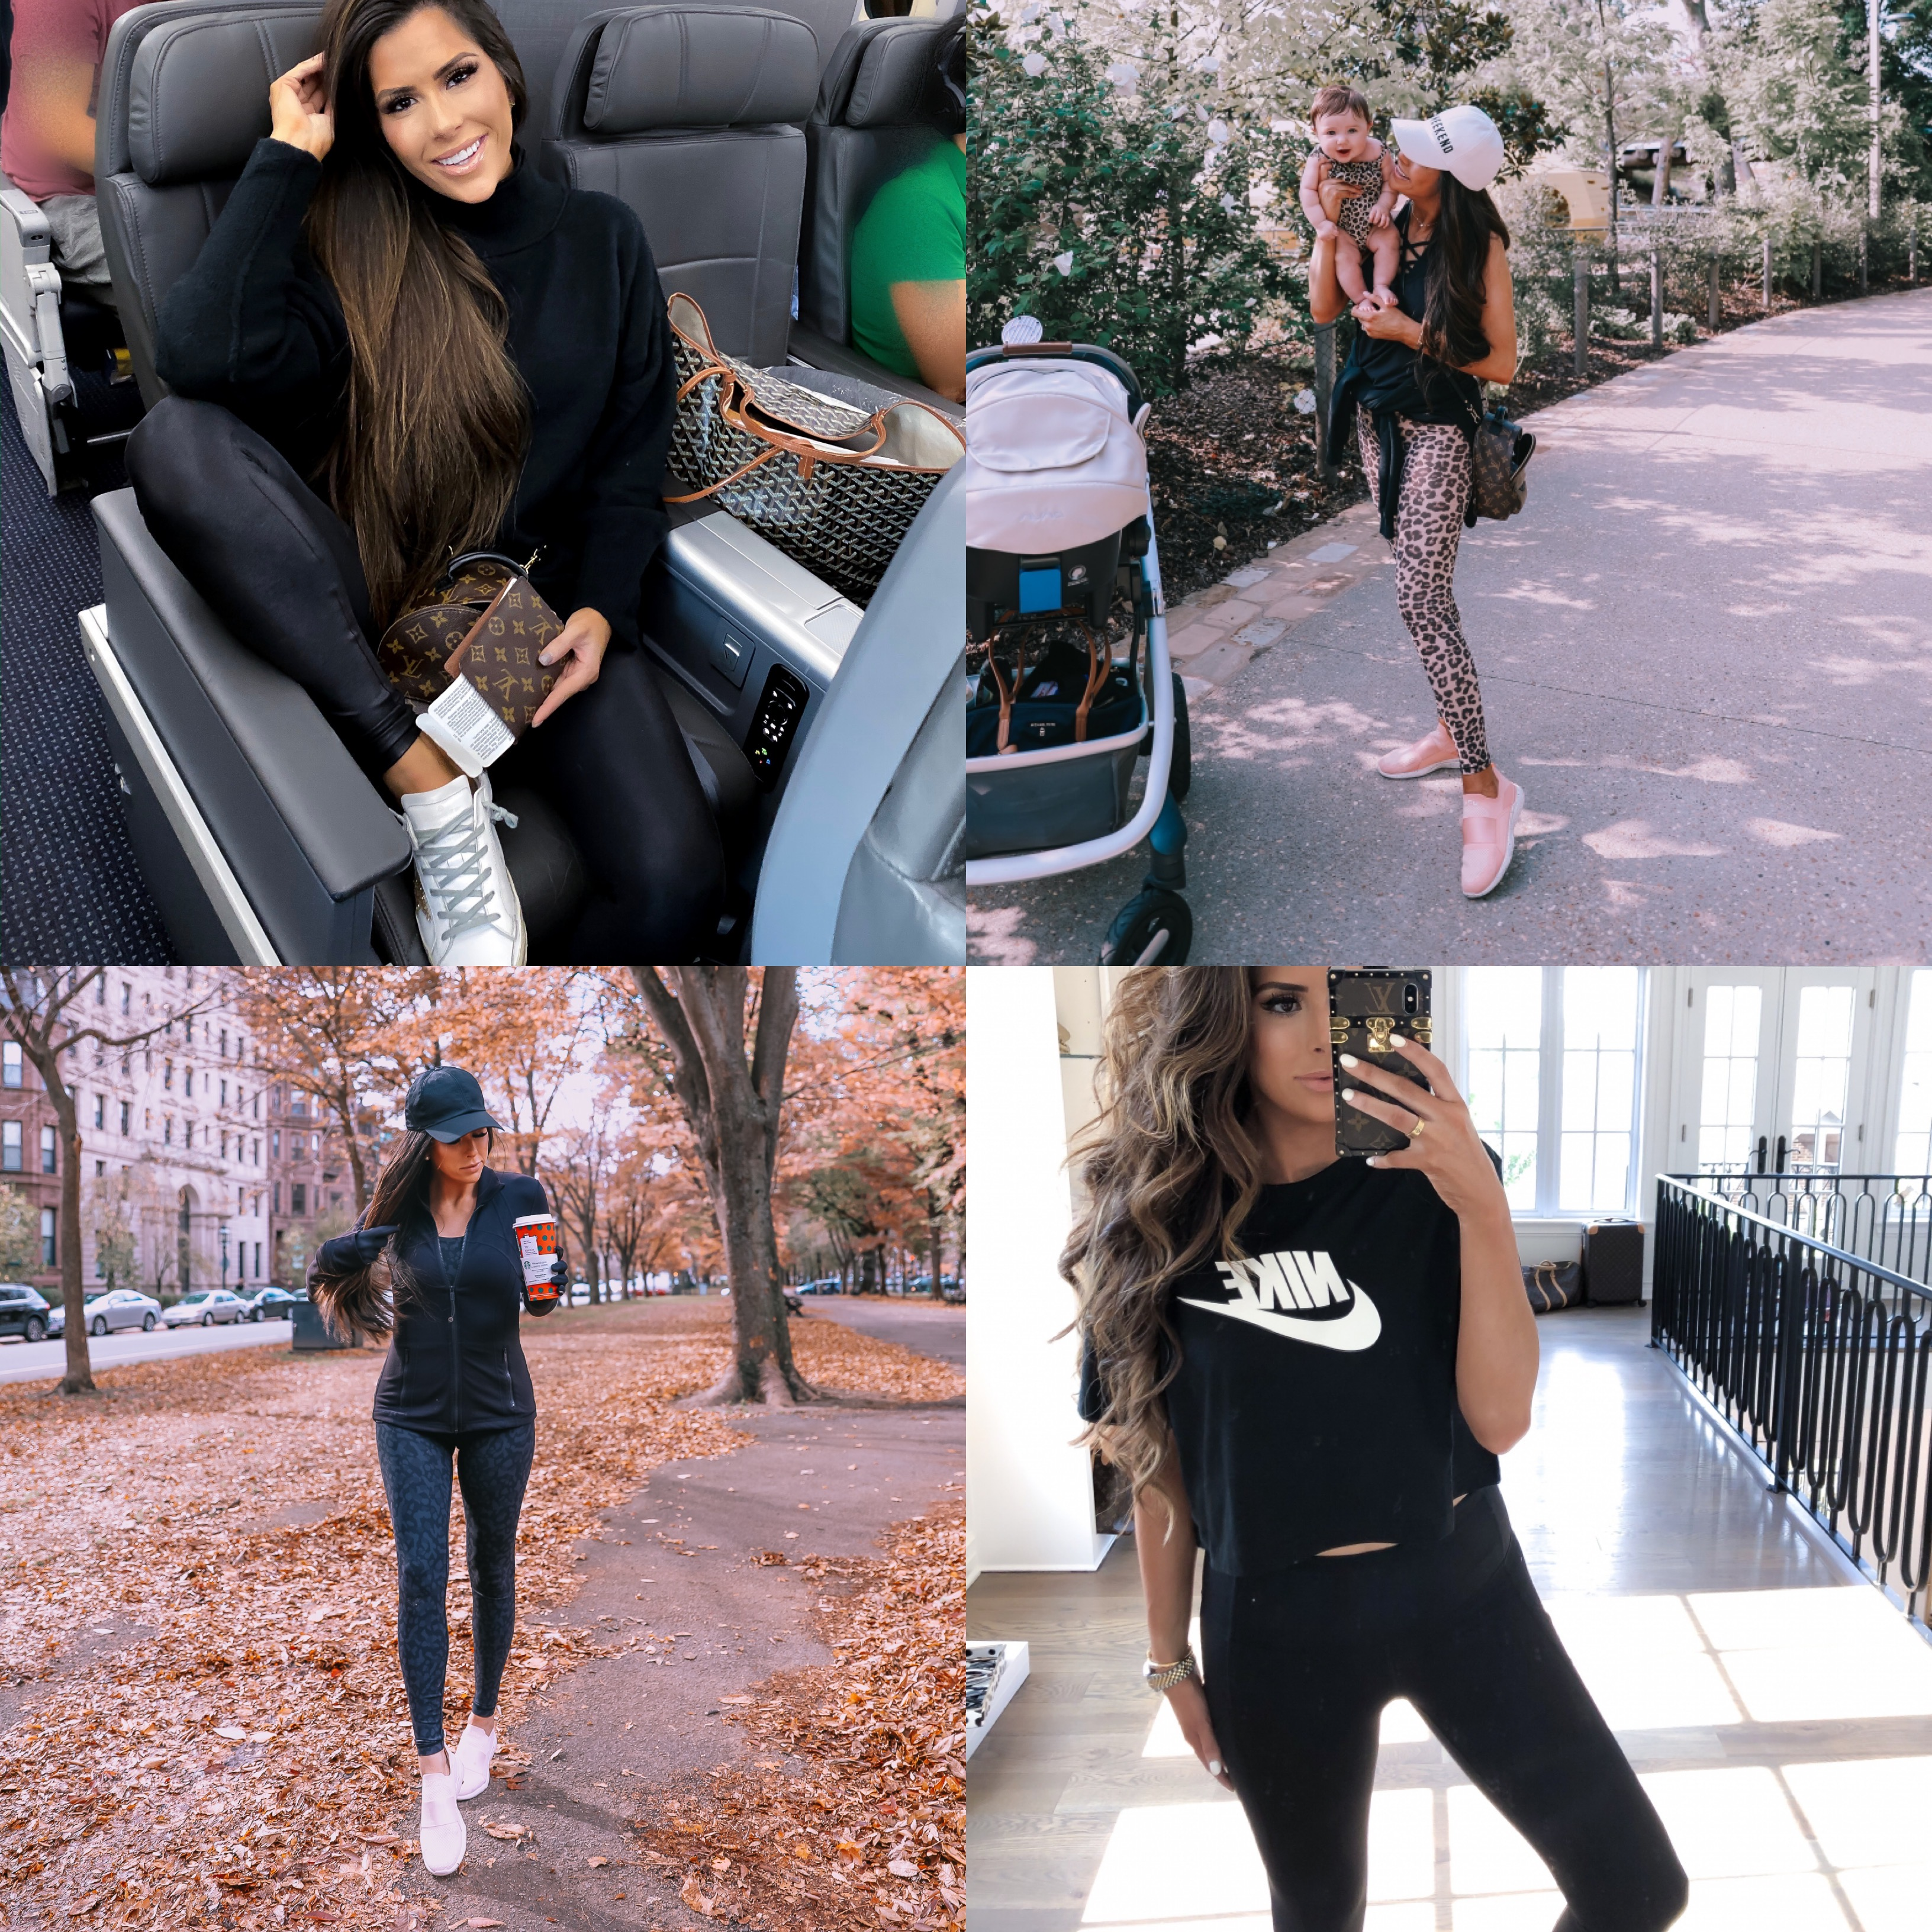 "best athletic leggings lululemon, zella, spanx review | Best Wardrobe Essentials 2019👖 | Part 2 by popular US fashion blog, The Sweetest Thing: collage image of a woman wearing Nordstrom Live In High Waist Leggings ZELLA, Nordstrom Live In High Waist Pocket 7/8 Leggings ZELLA,ZELLA Mamasana Live In Maternity Ankle Leggings, Main, color, BLACK SIZE INFO XXS=00, XS=0-2, S=4-6, M=8-10, L=12-14, XL=16-18 (14W), XXL=20 (16W). Over the belly. DETAILS & CARE A stretchy, supportive panel expands with your growing bump in these lean, ankle-skimming leggings. Ideal for working out or wearing out and about, they're cut from a moisture-wicking Zeltek fabric and sewn with flatlock seaming for incredible comfort.  27"" inseam; 8 1/2"" leg opening; 15"" front rise; 15 1/2"" back rise (size Medium) Moisture-wicking Zeltek fabric dries quickly to keep you cool and comfortable Smooth flatlock seaming won't rub or irritate 88% polyester, 12% spandex Machine wash, tumble dry Imported Women's Active & Swim Item #5623737 Helpful info: See details and tips from a salesperson (video) Activewear Glossary Free Shipping & Returns See more (262) Mamasana Live In Maternity Ankle Leggings ZELLA, Nordstrom Faux Leather Leggings SPANX®, and Lululemon Align Pant 28""."